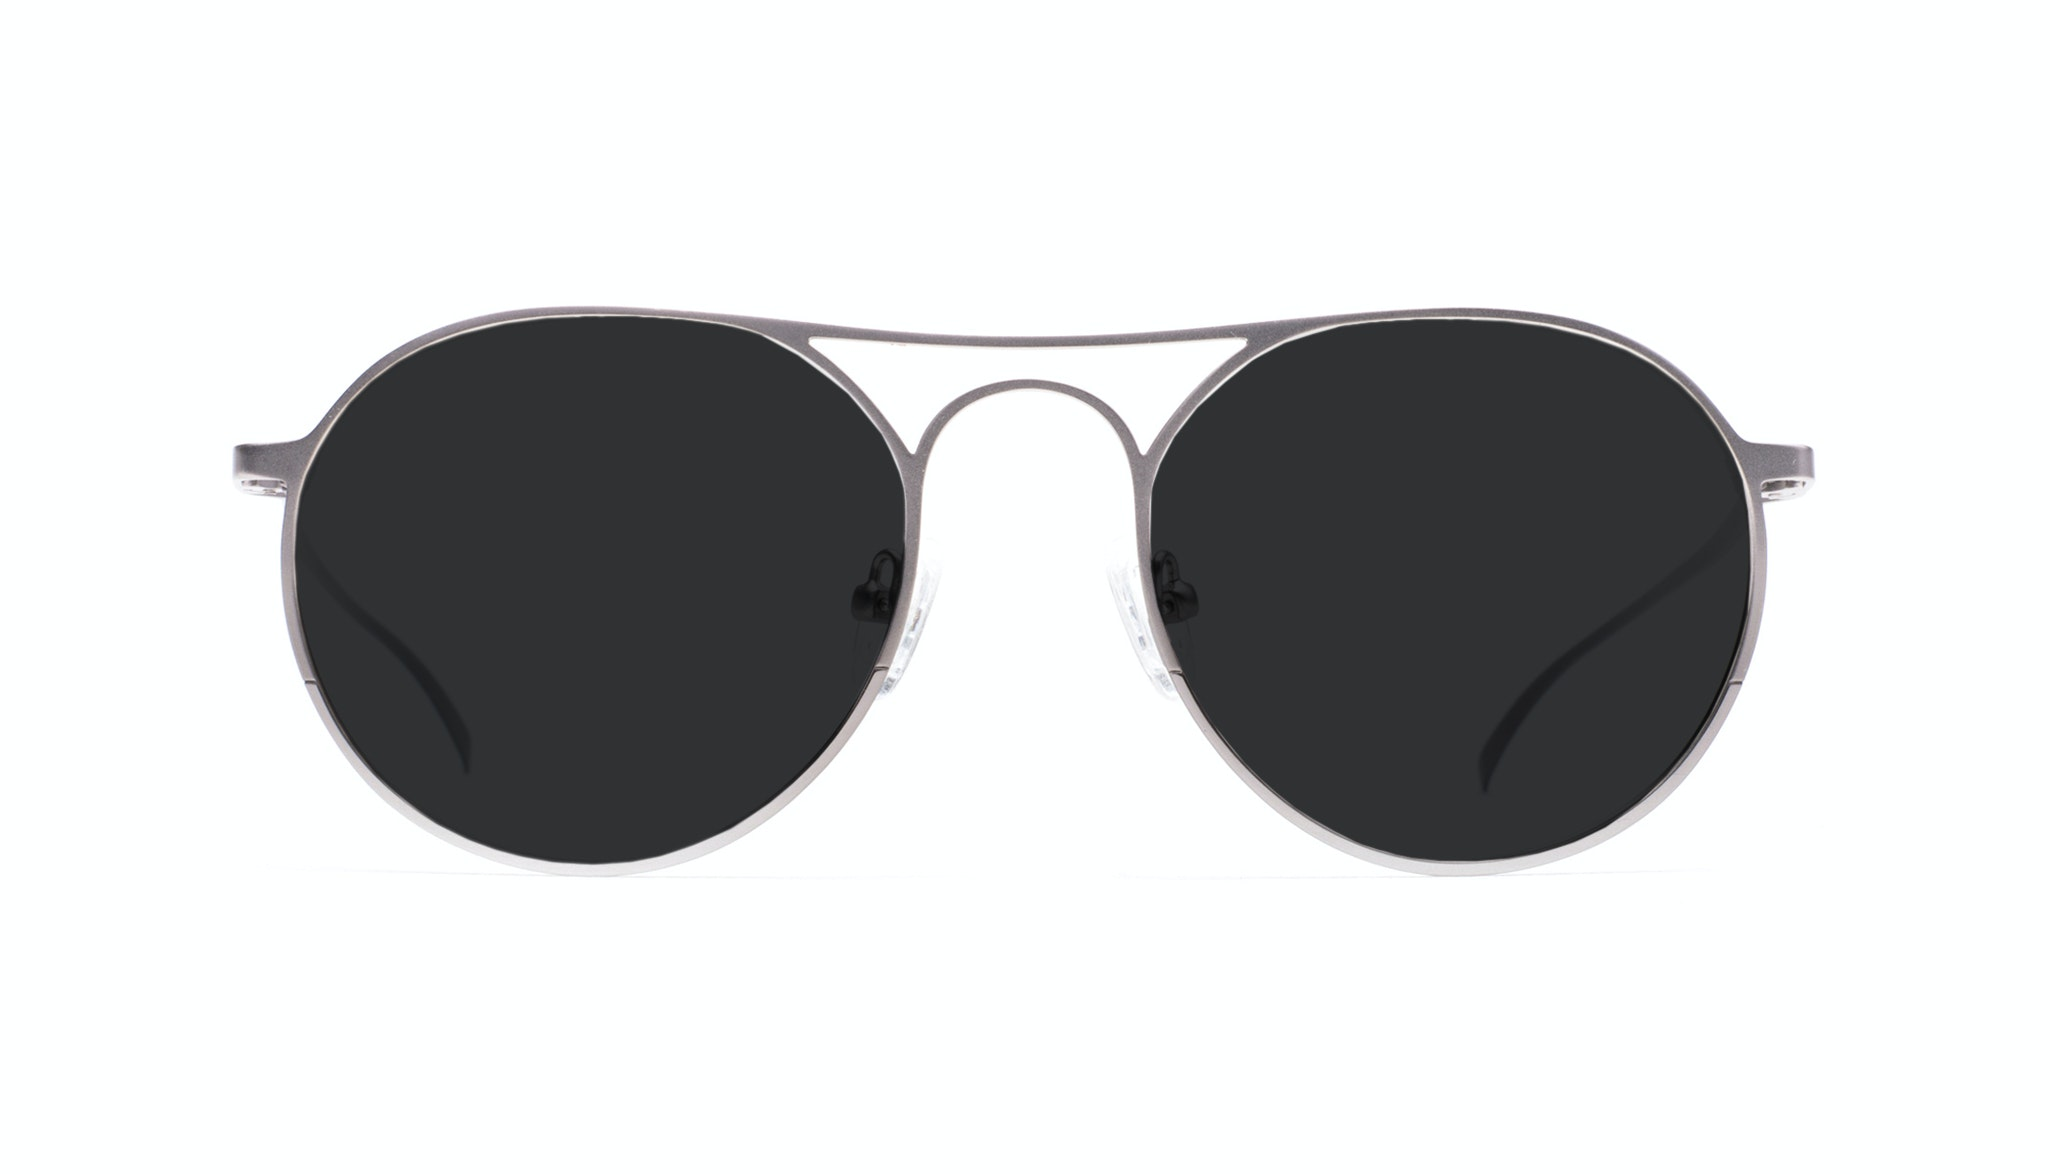 Affordable Fashion Glasses Aviator Round Sunglasses Men Contour Silver Front